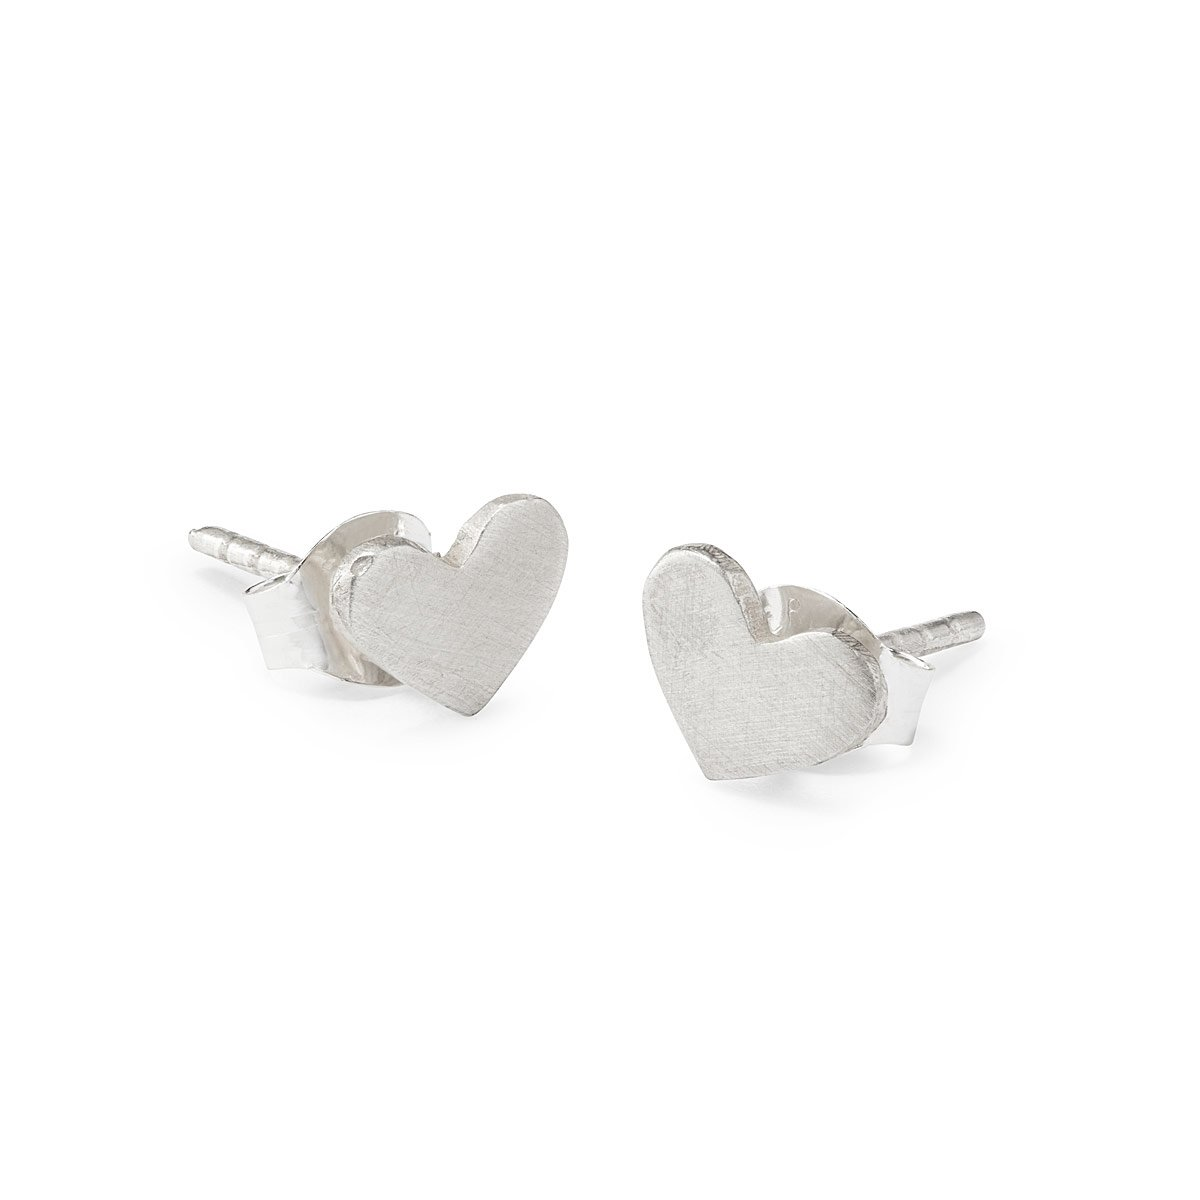 Sterling Silver Heart Earrings Studs Uncommongoods